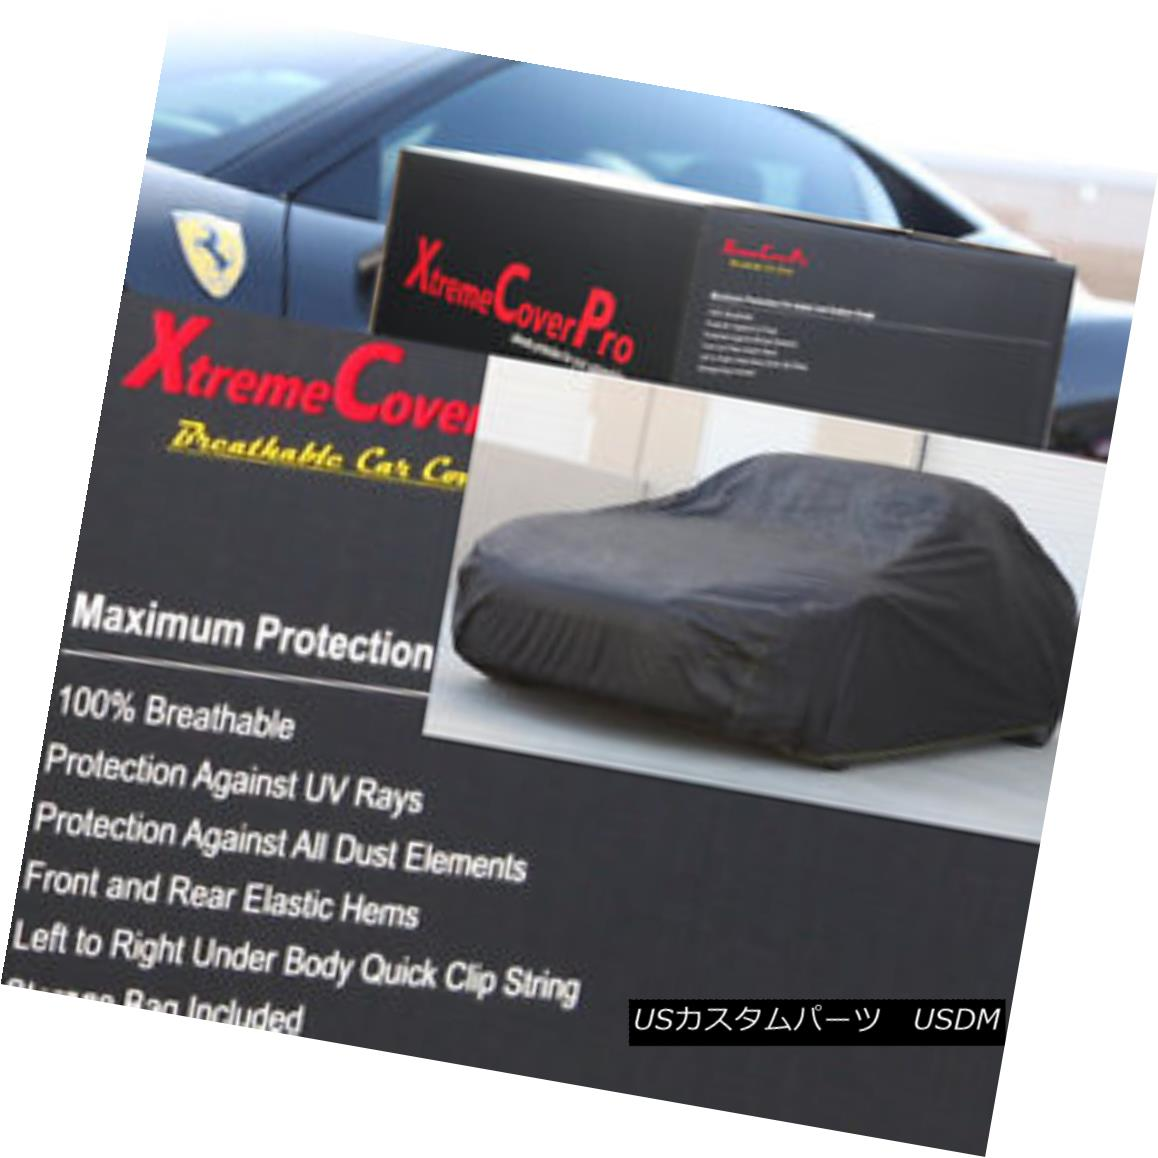 カーカバー 1998 1999 2000 2001 2002 BMW M Roadster Breathable Car Cover 1998 1999 2000 2001 2002 BMW Mロードスター通気性車カバー